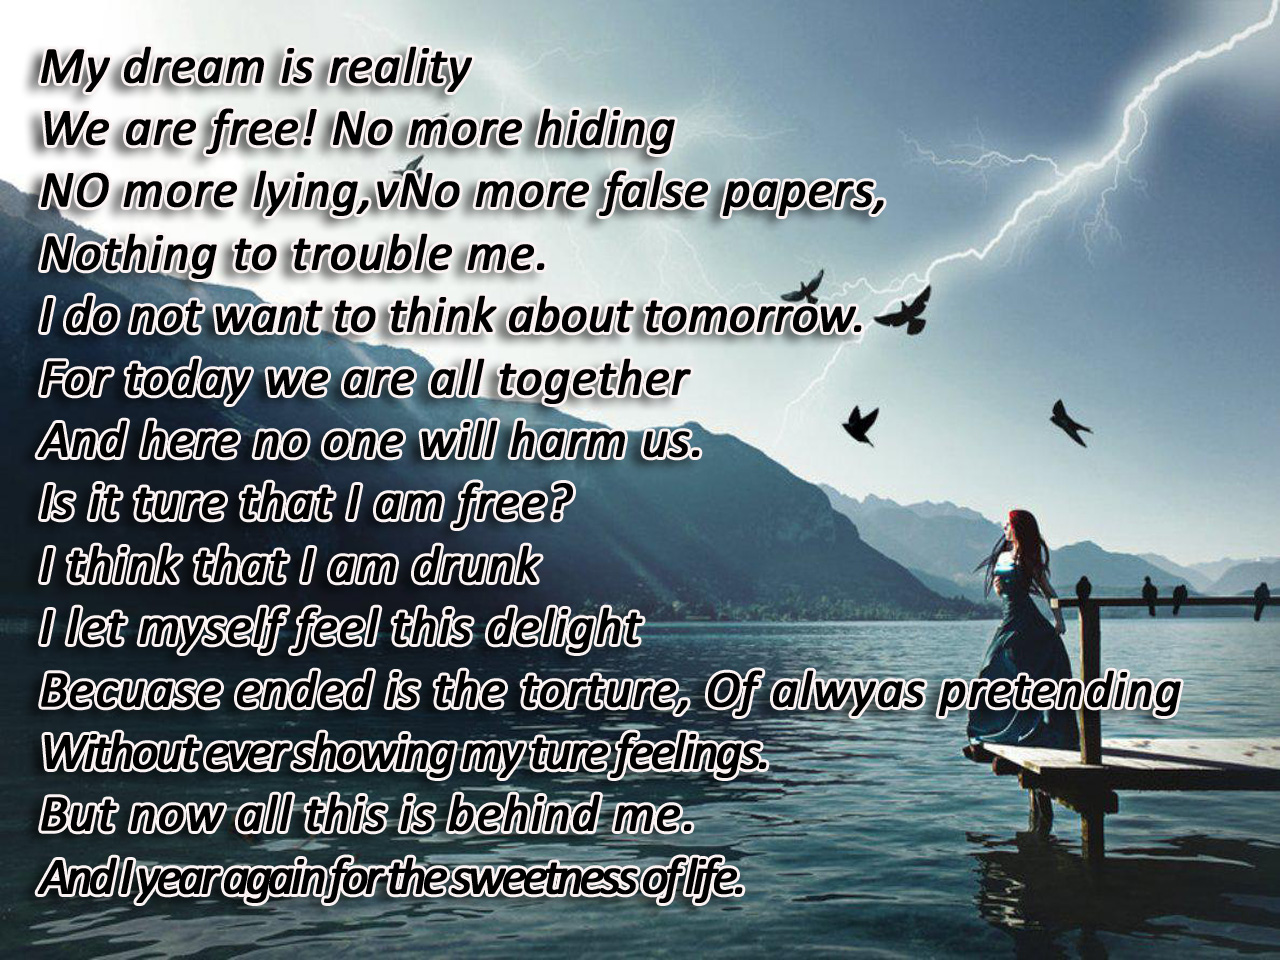 Dream Big Quotes Wallpaper Freedom Poems With Hd Wallpaper Free Download Poetry Likers